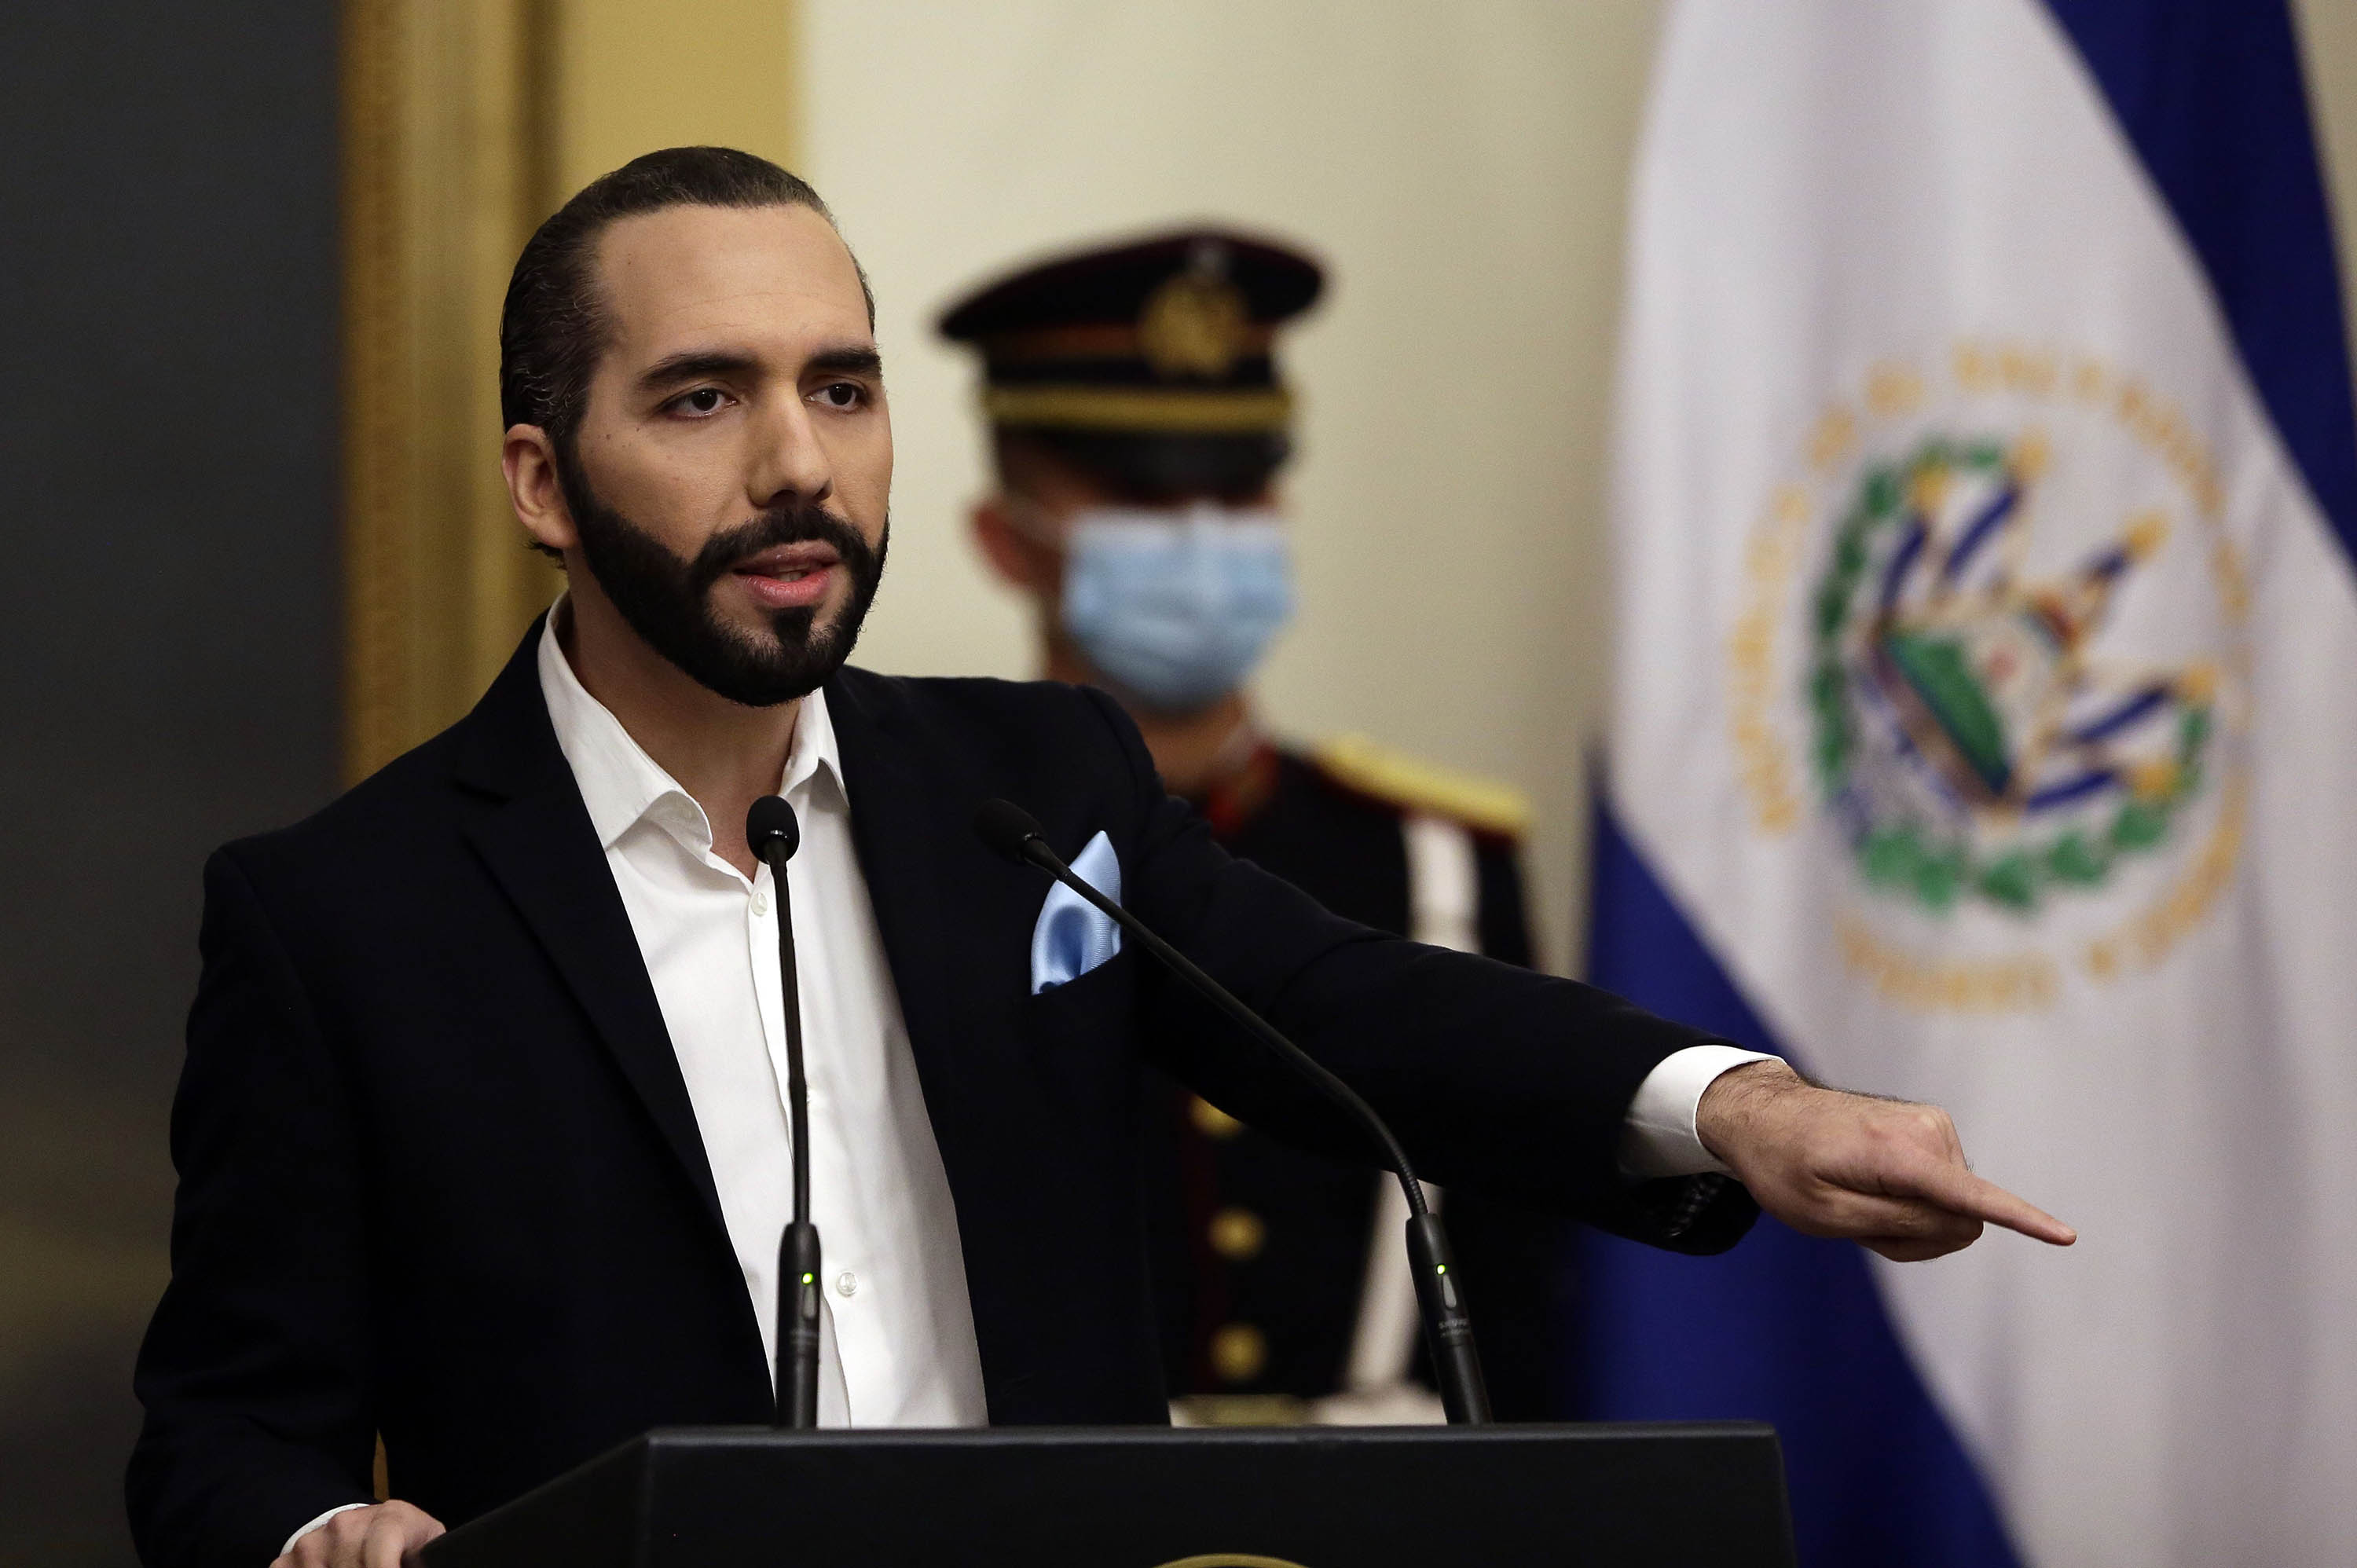 El Salvador's President Nayib Bukele speaks during a press conference in San Salvador, El Salvador, on September 24.